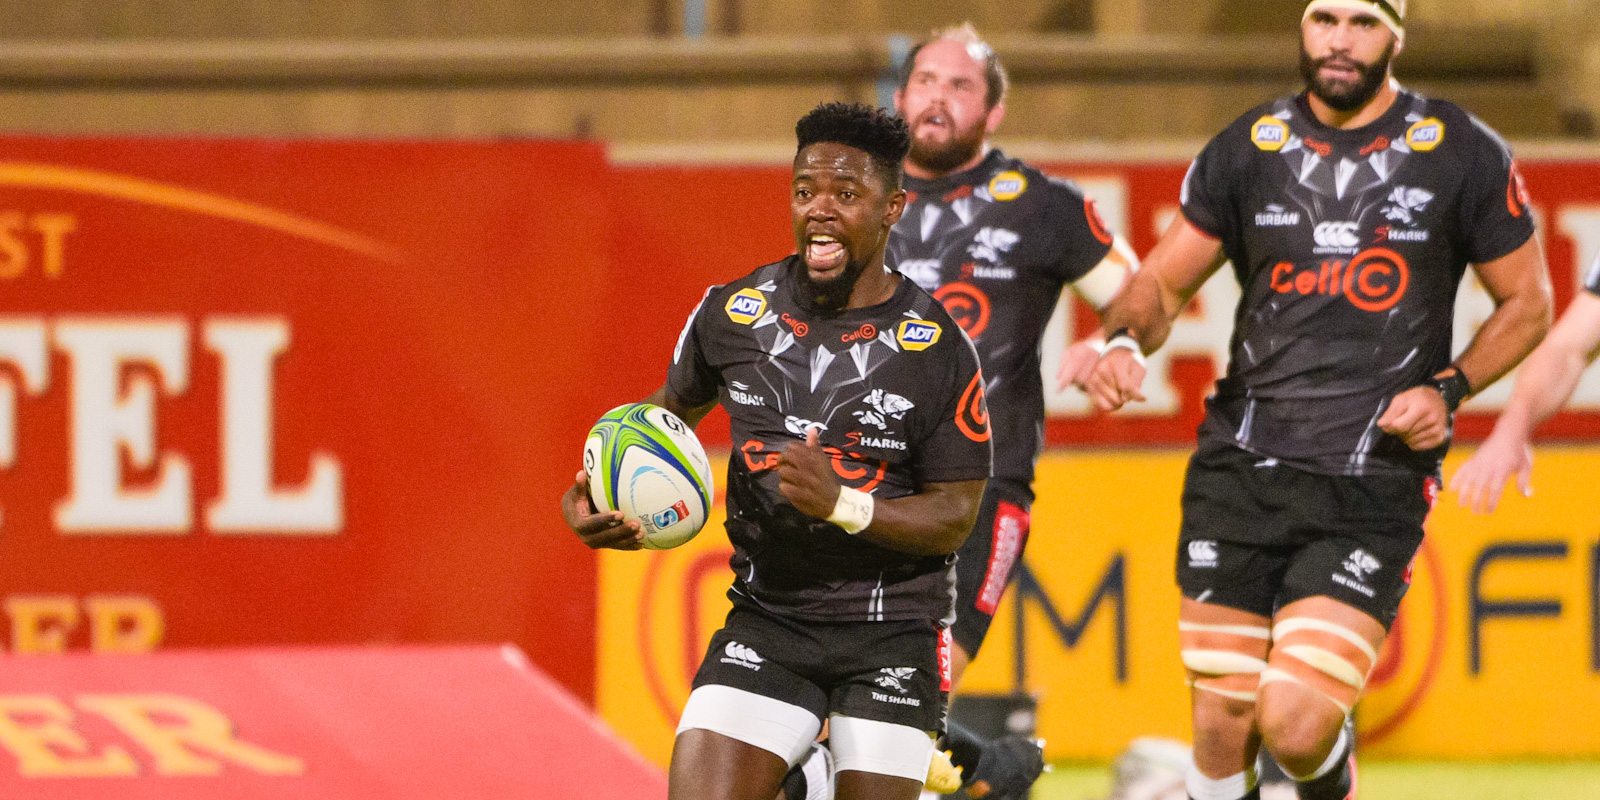 Sanele Nohamba scored one of the Cell C Sharks' four tries.